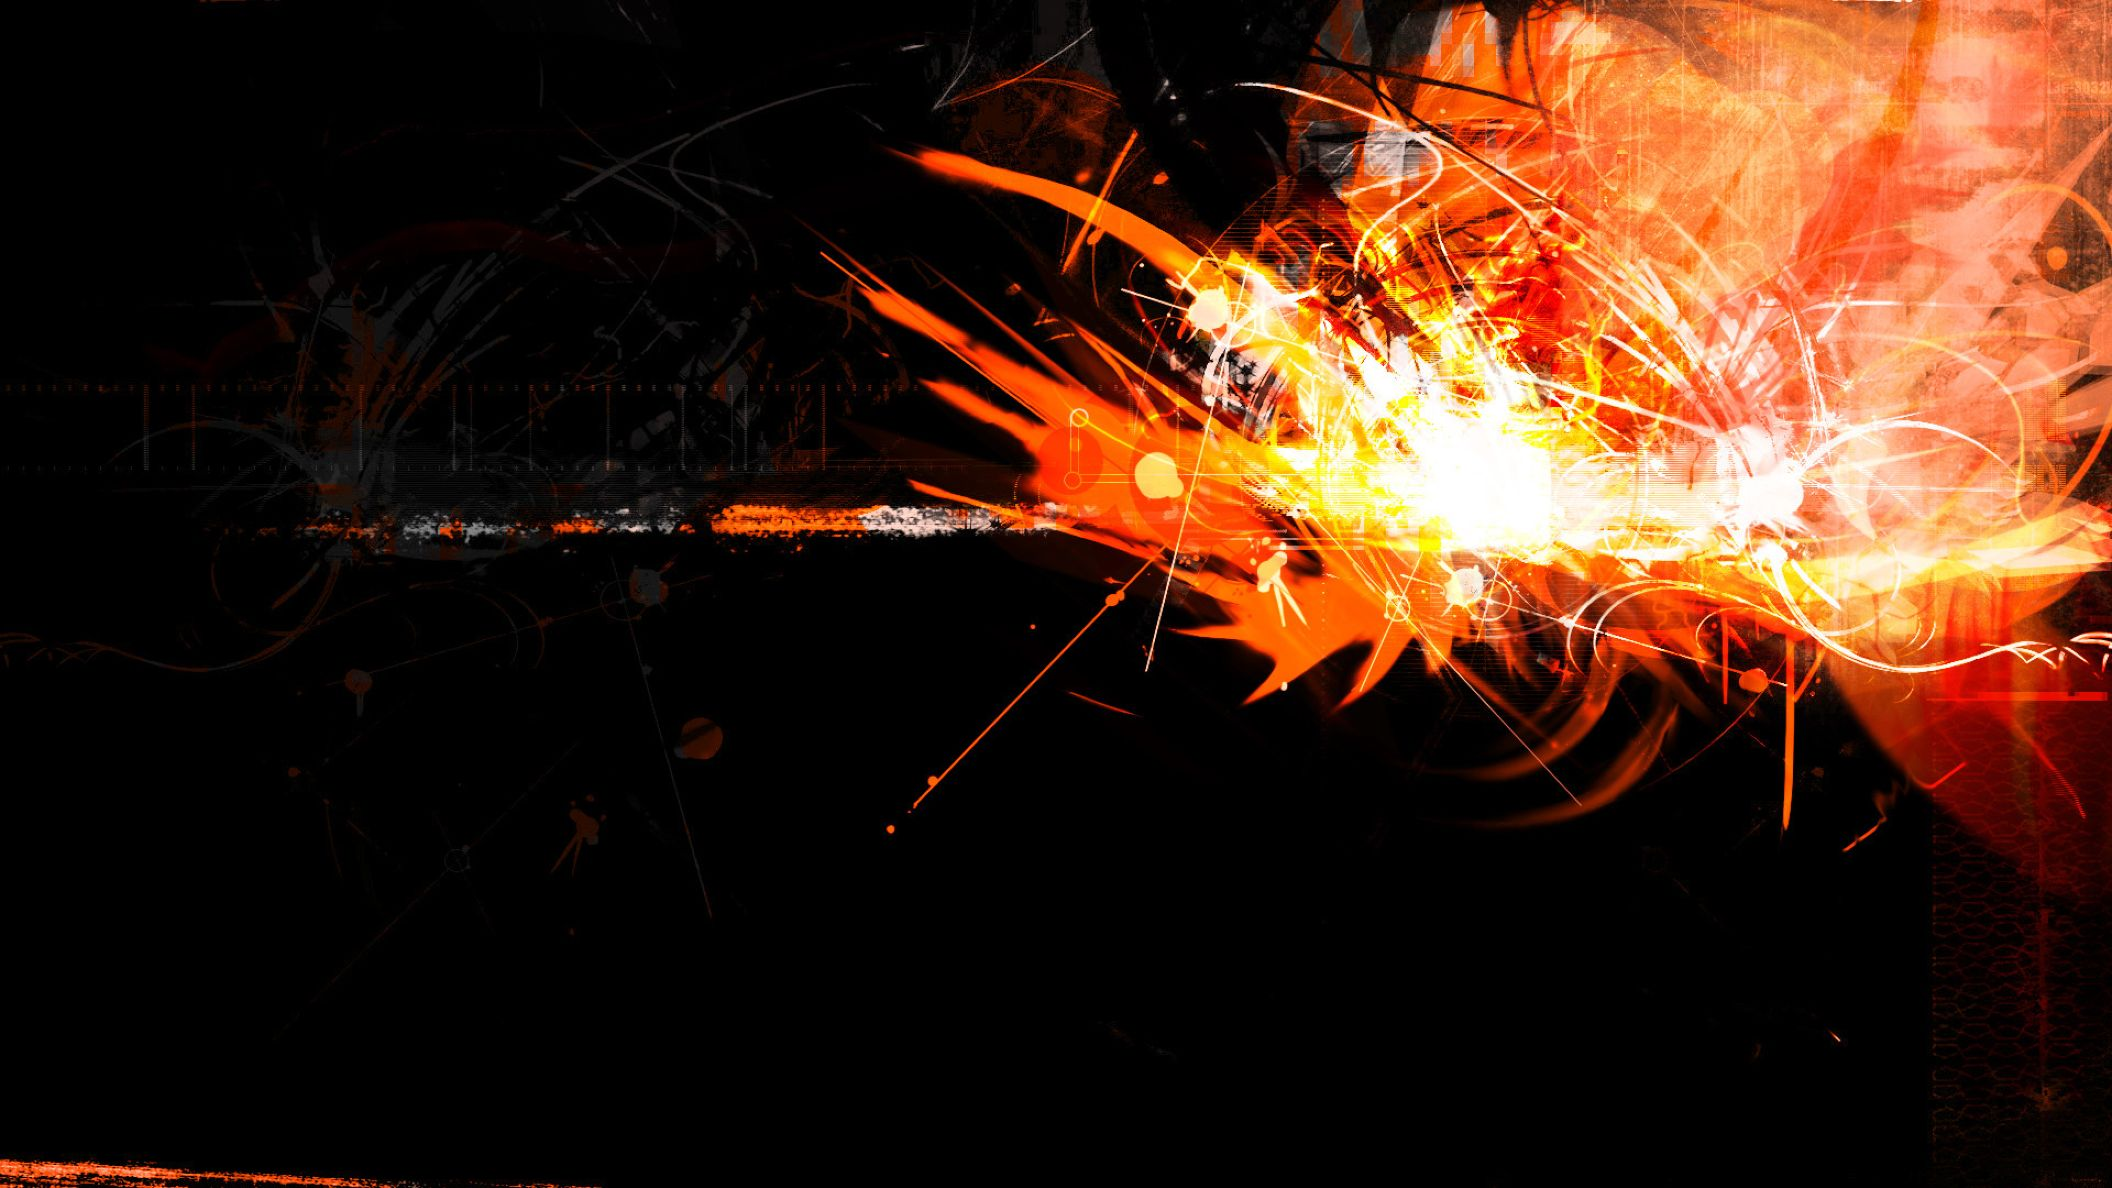 Abstract Background Pictures For Desktop Wallpaper Desktop